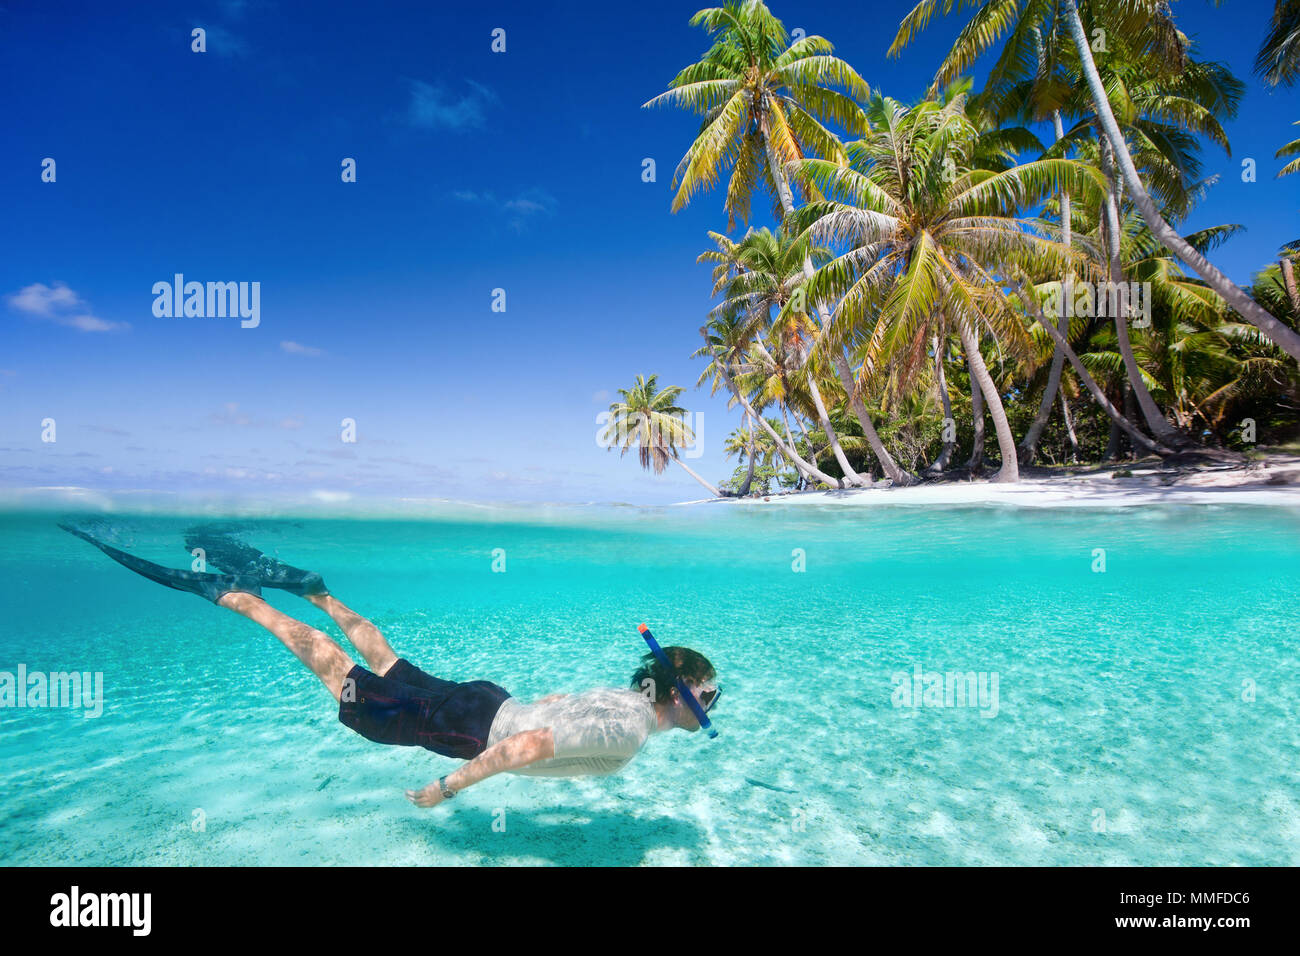 Man swimming in a clear tropical waters in front of exotic island - Stock Image